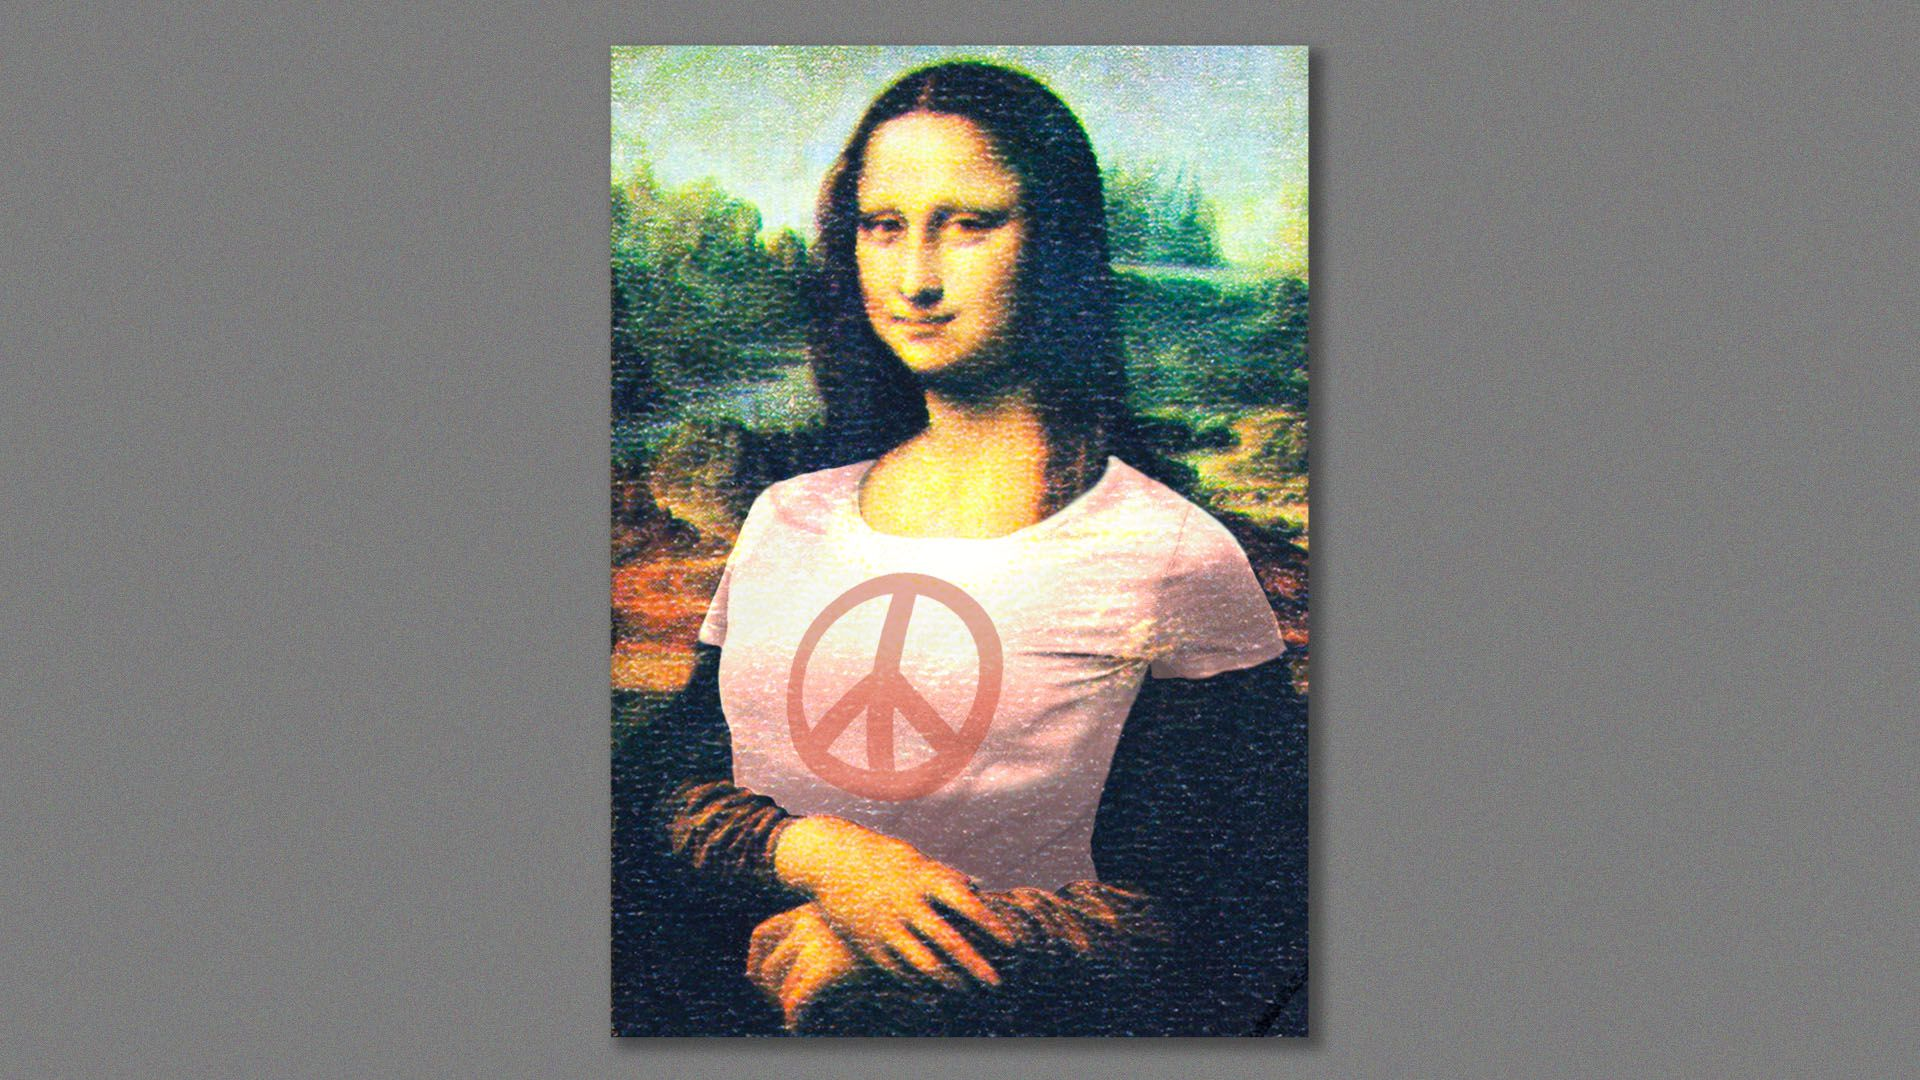 Illustration of Mona Lisa in a t-shirt with a peace sign